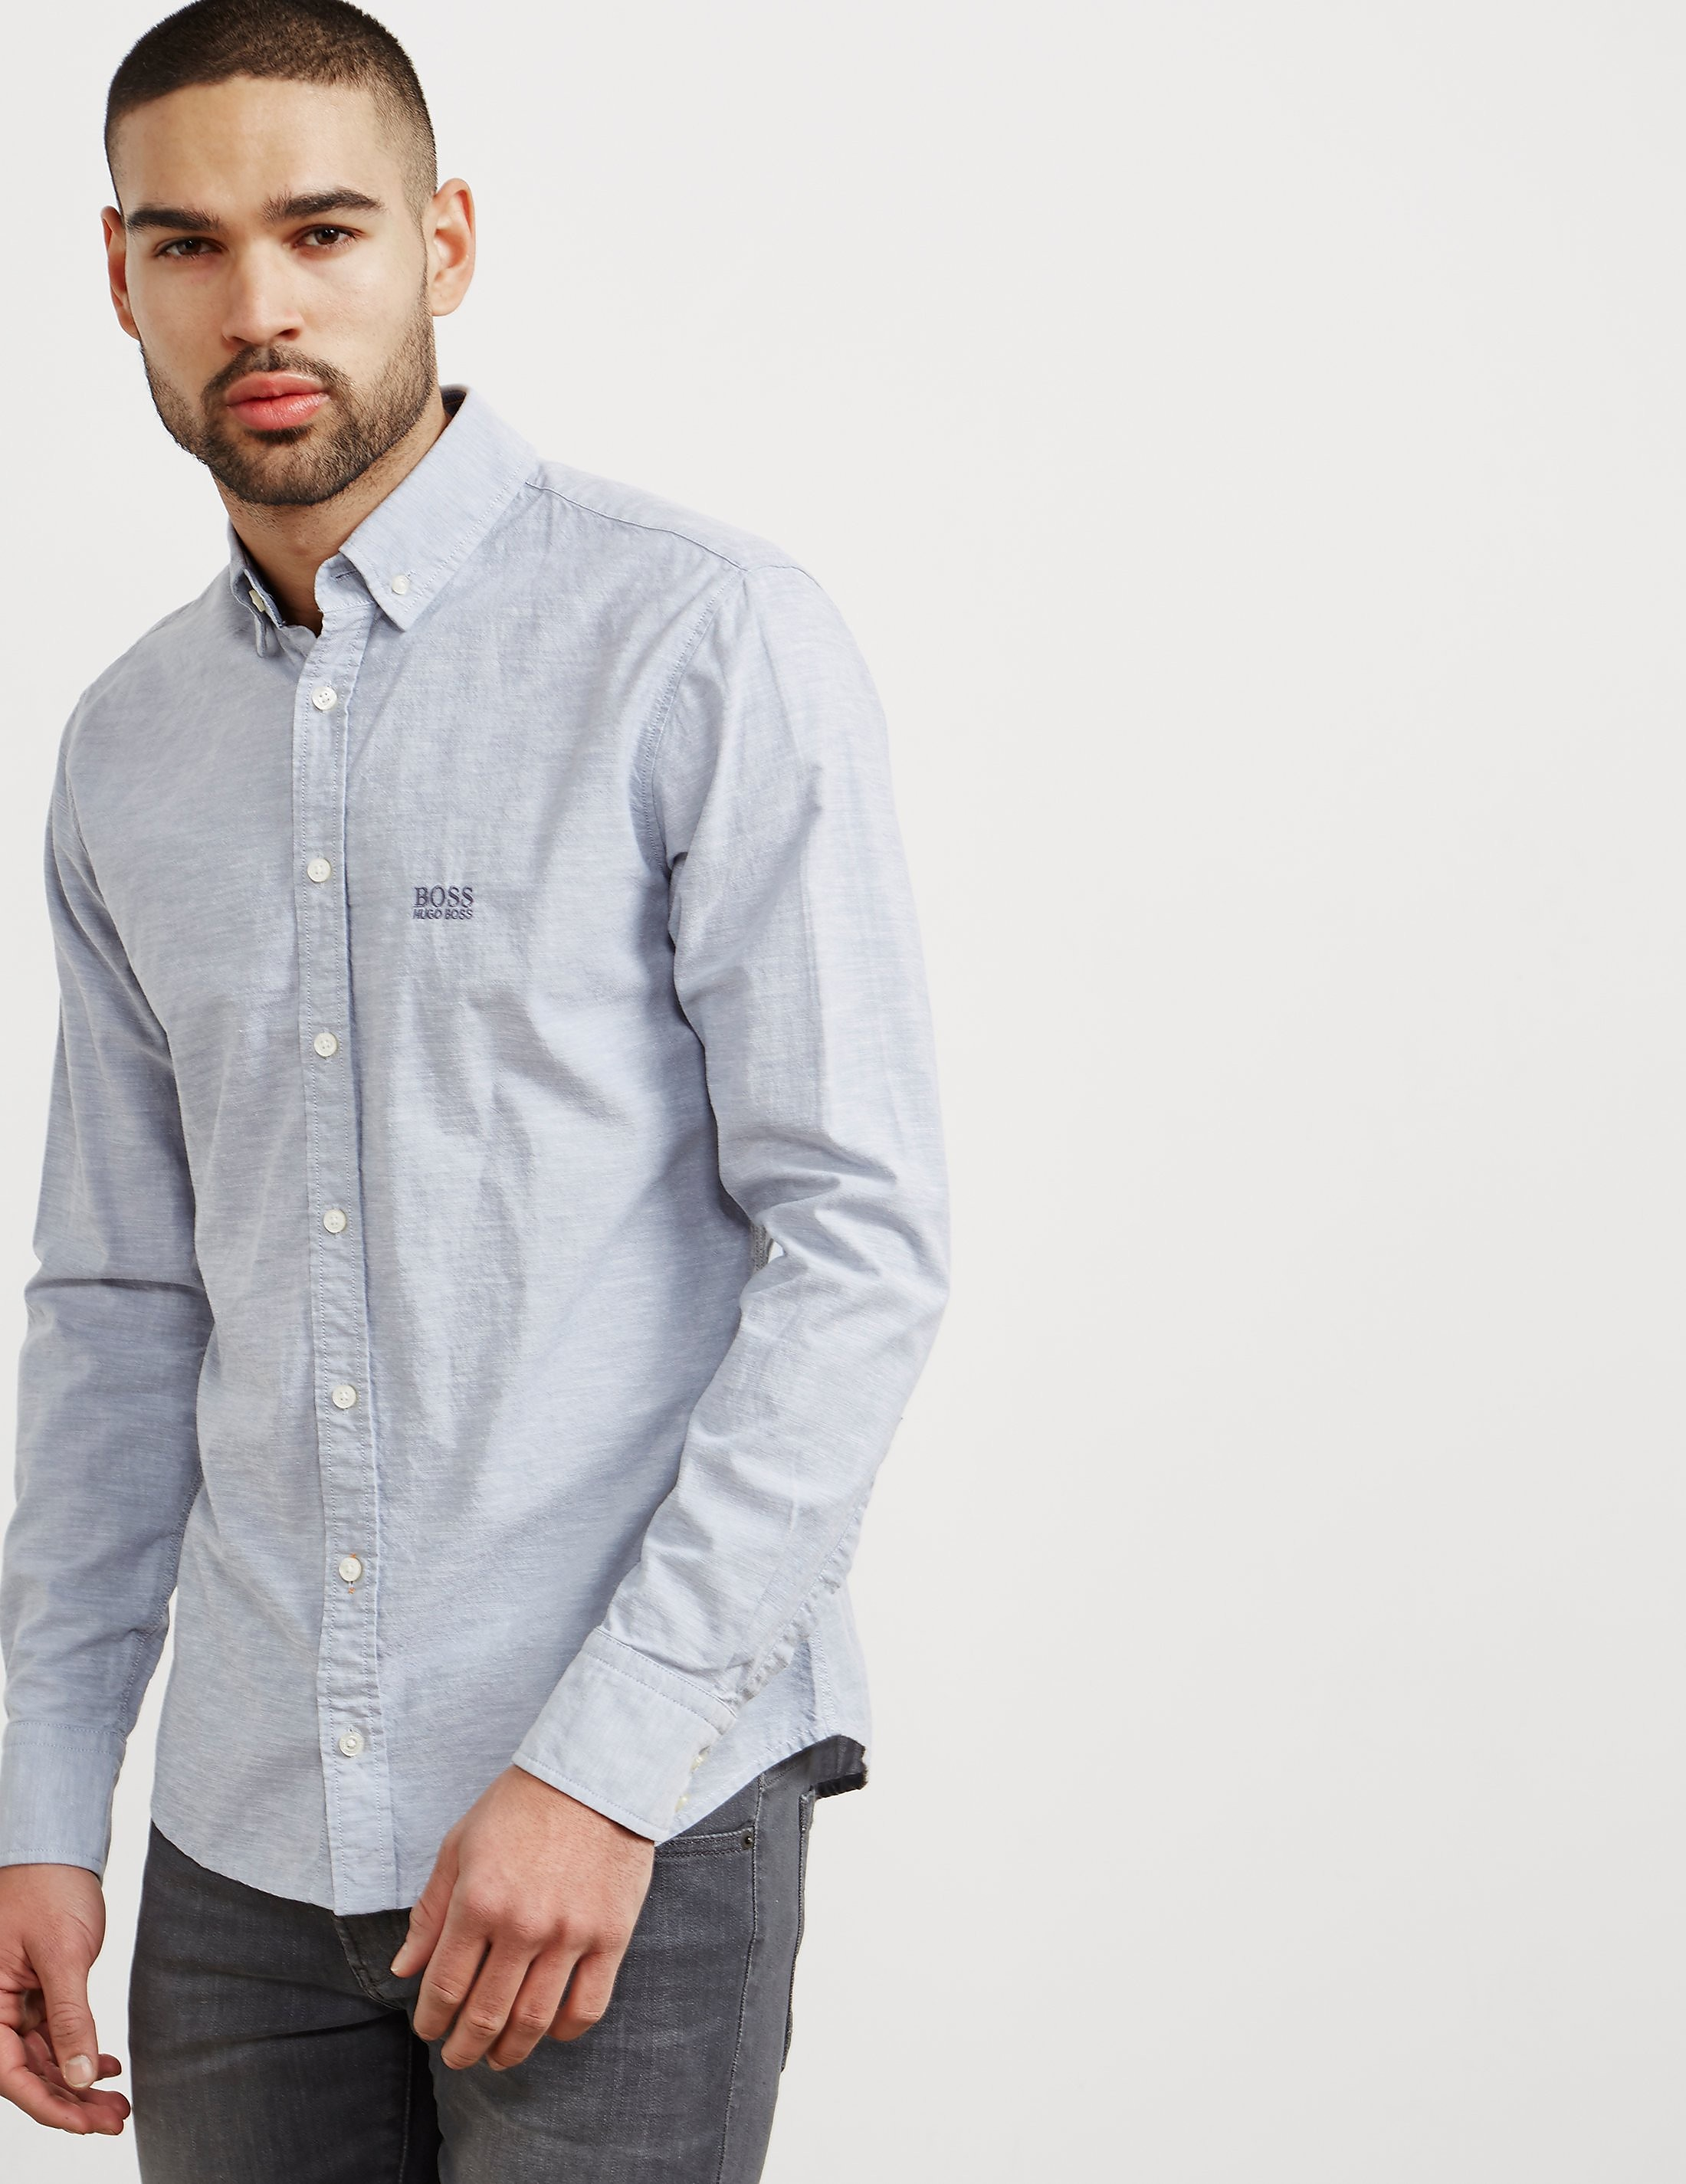 BOSS E-Preppy Long Sleeve Shirt